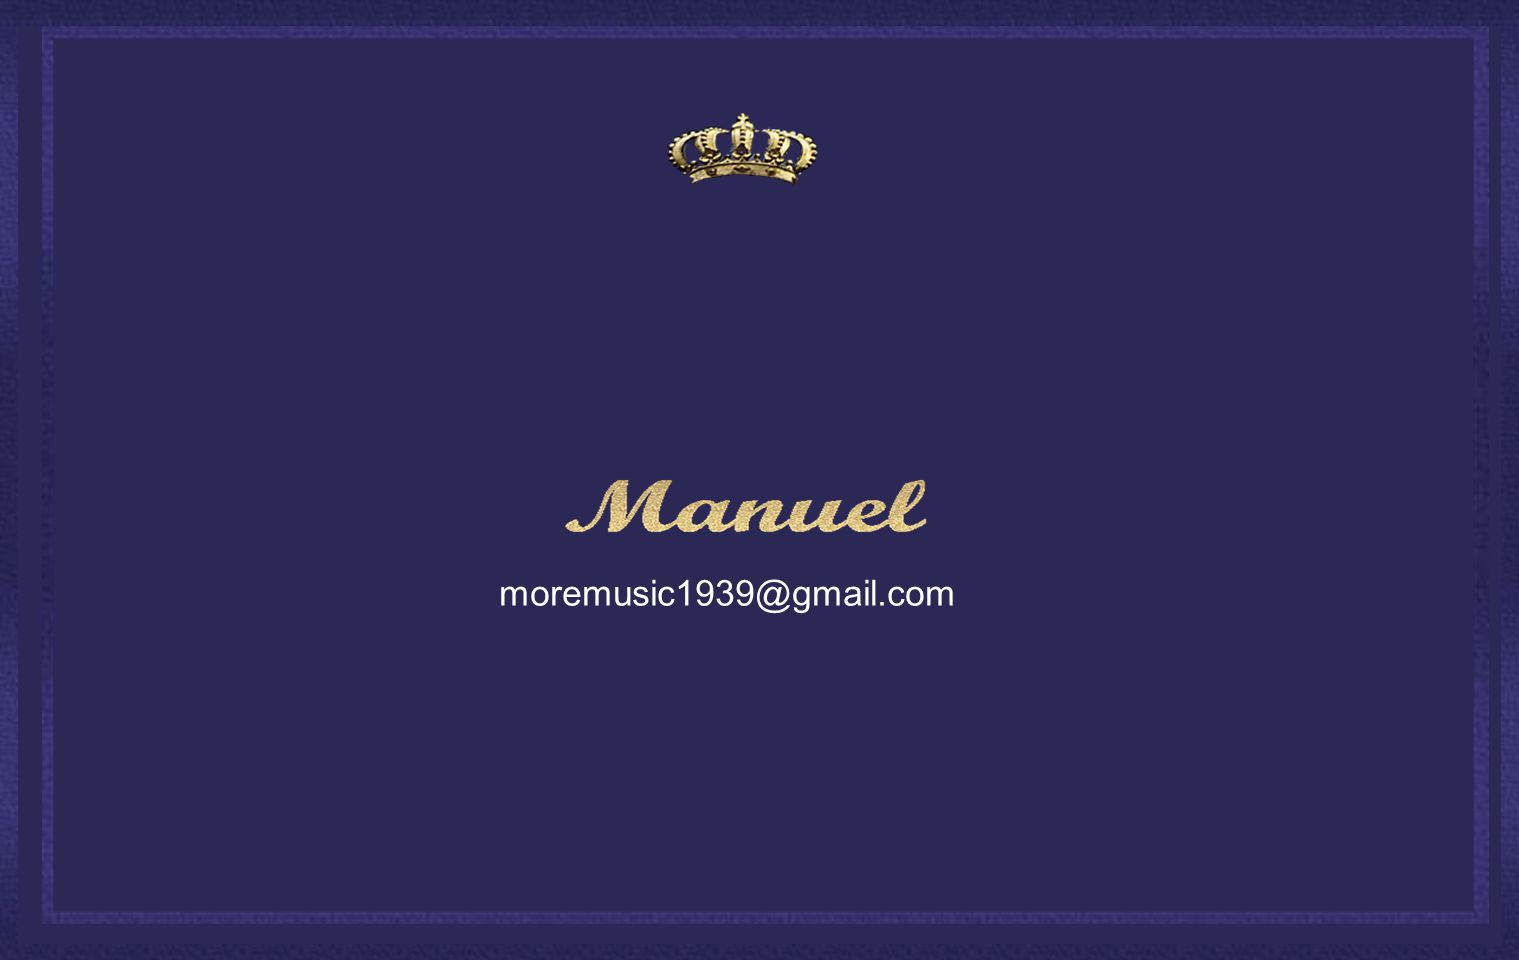 moremusic1939@gmail.com